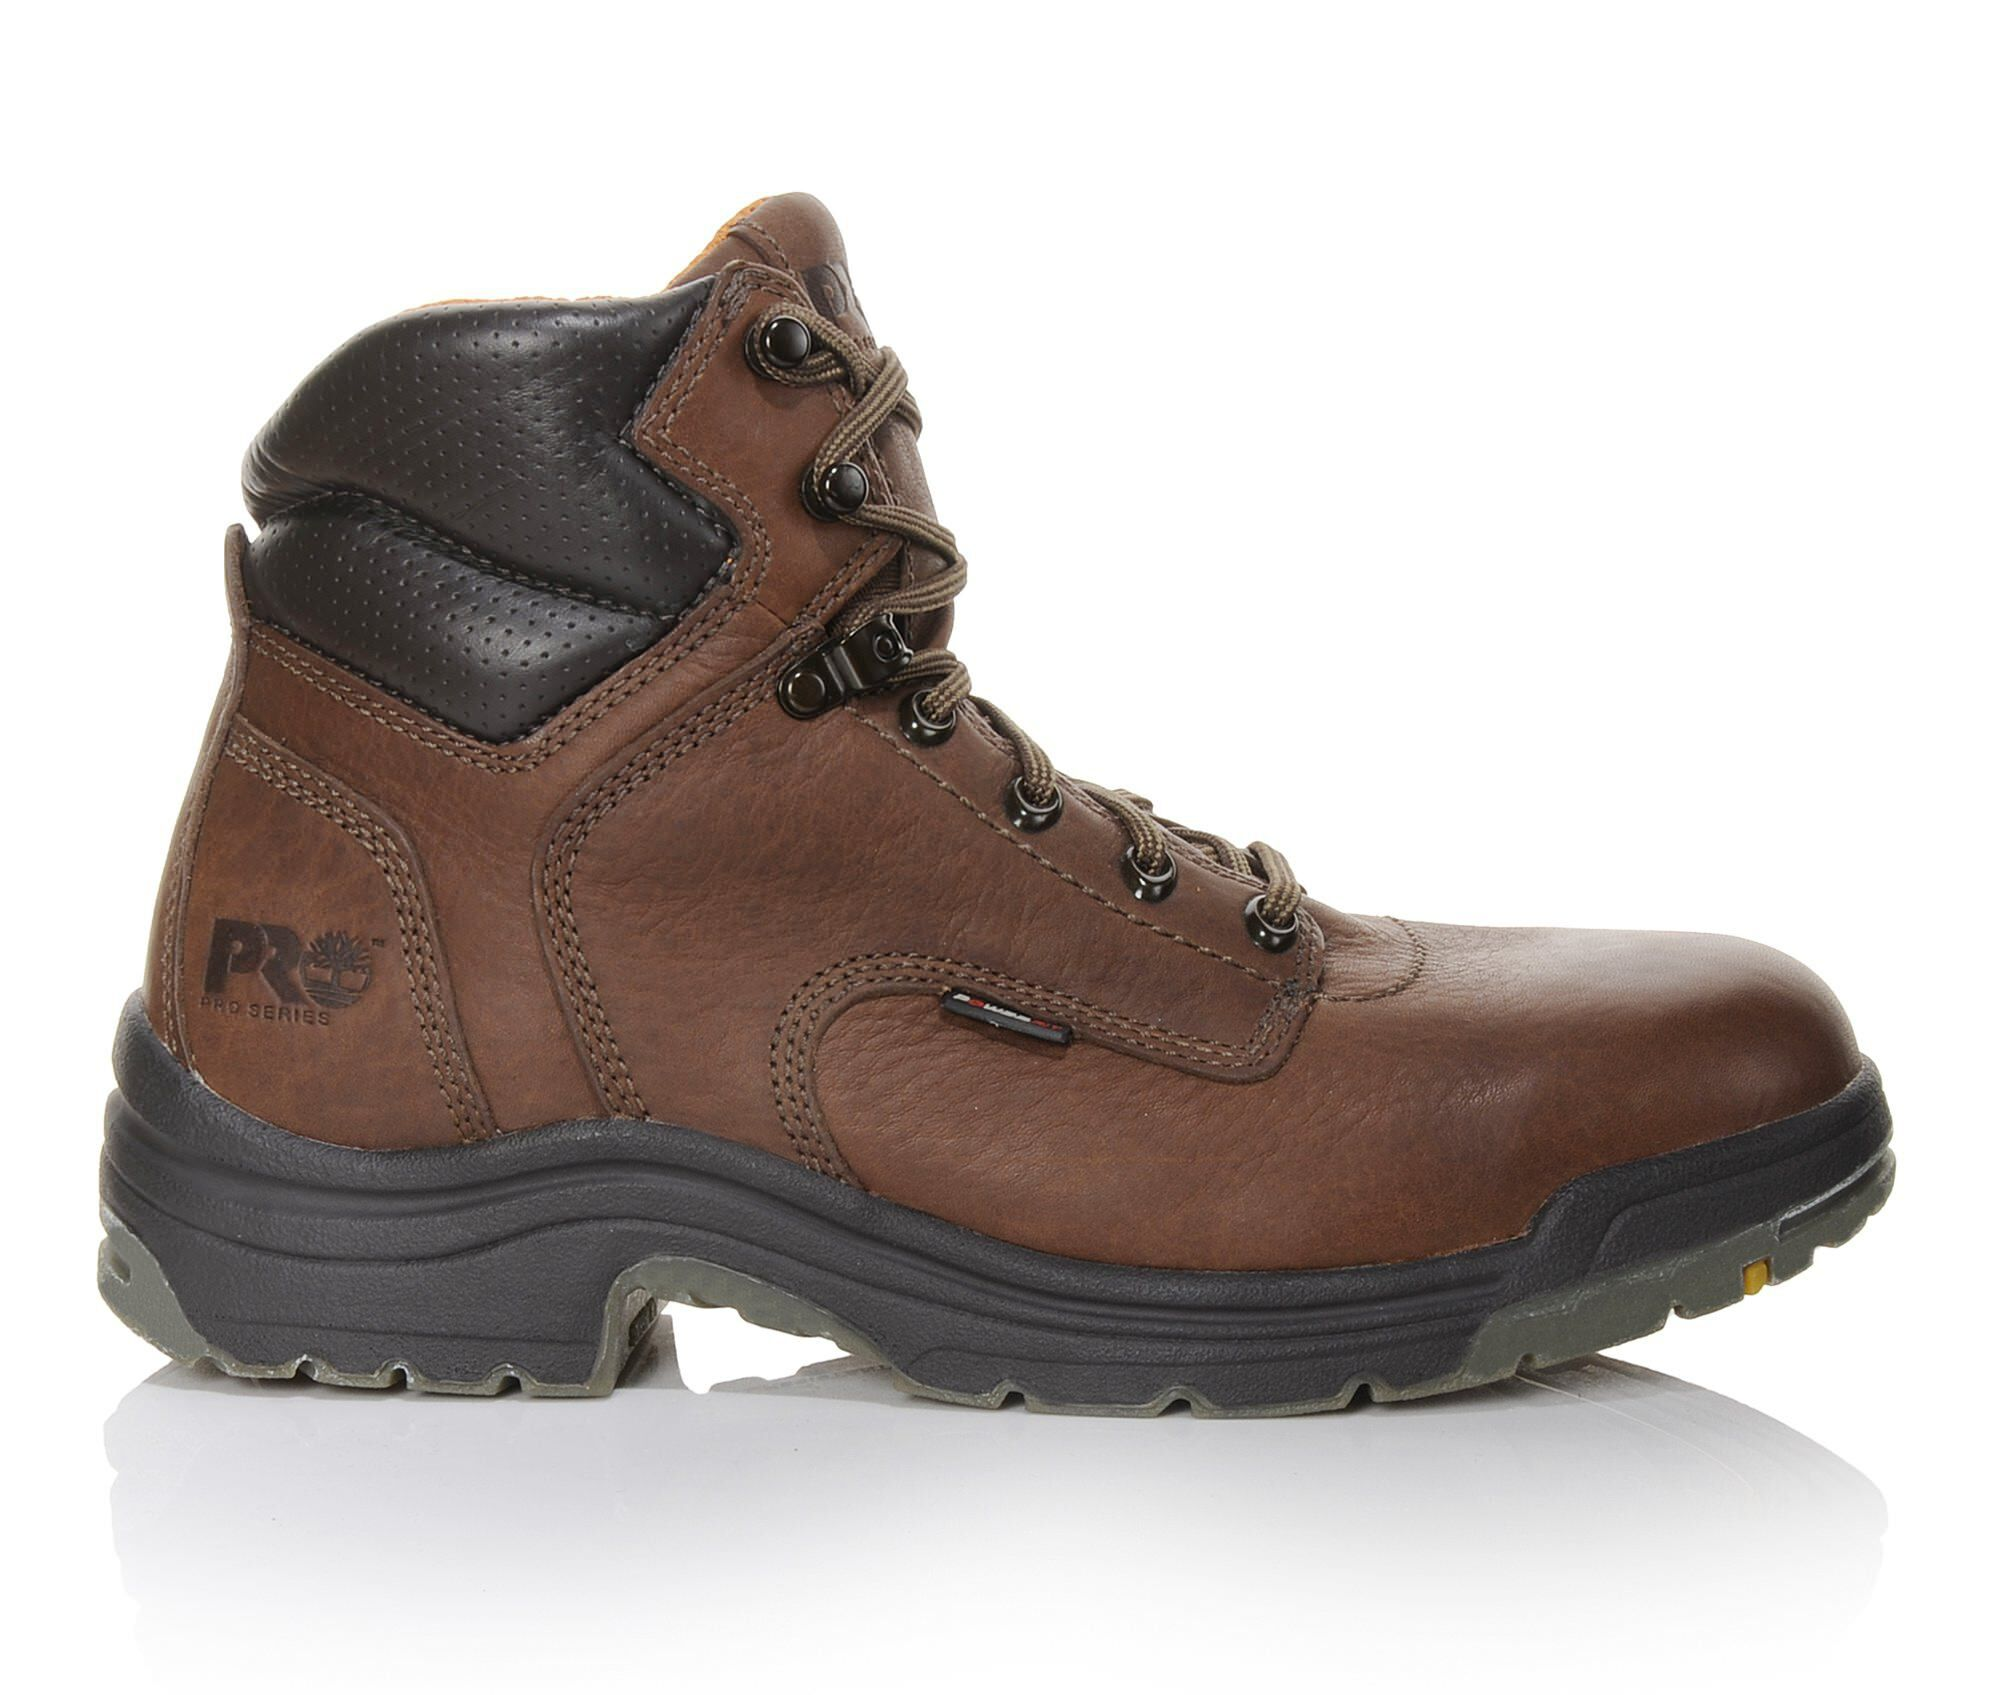 fast shipping Men's Timberland Pro Titan 6 Inch 24097 Soft Toe Work Boots Coffee